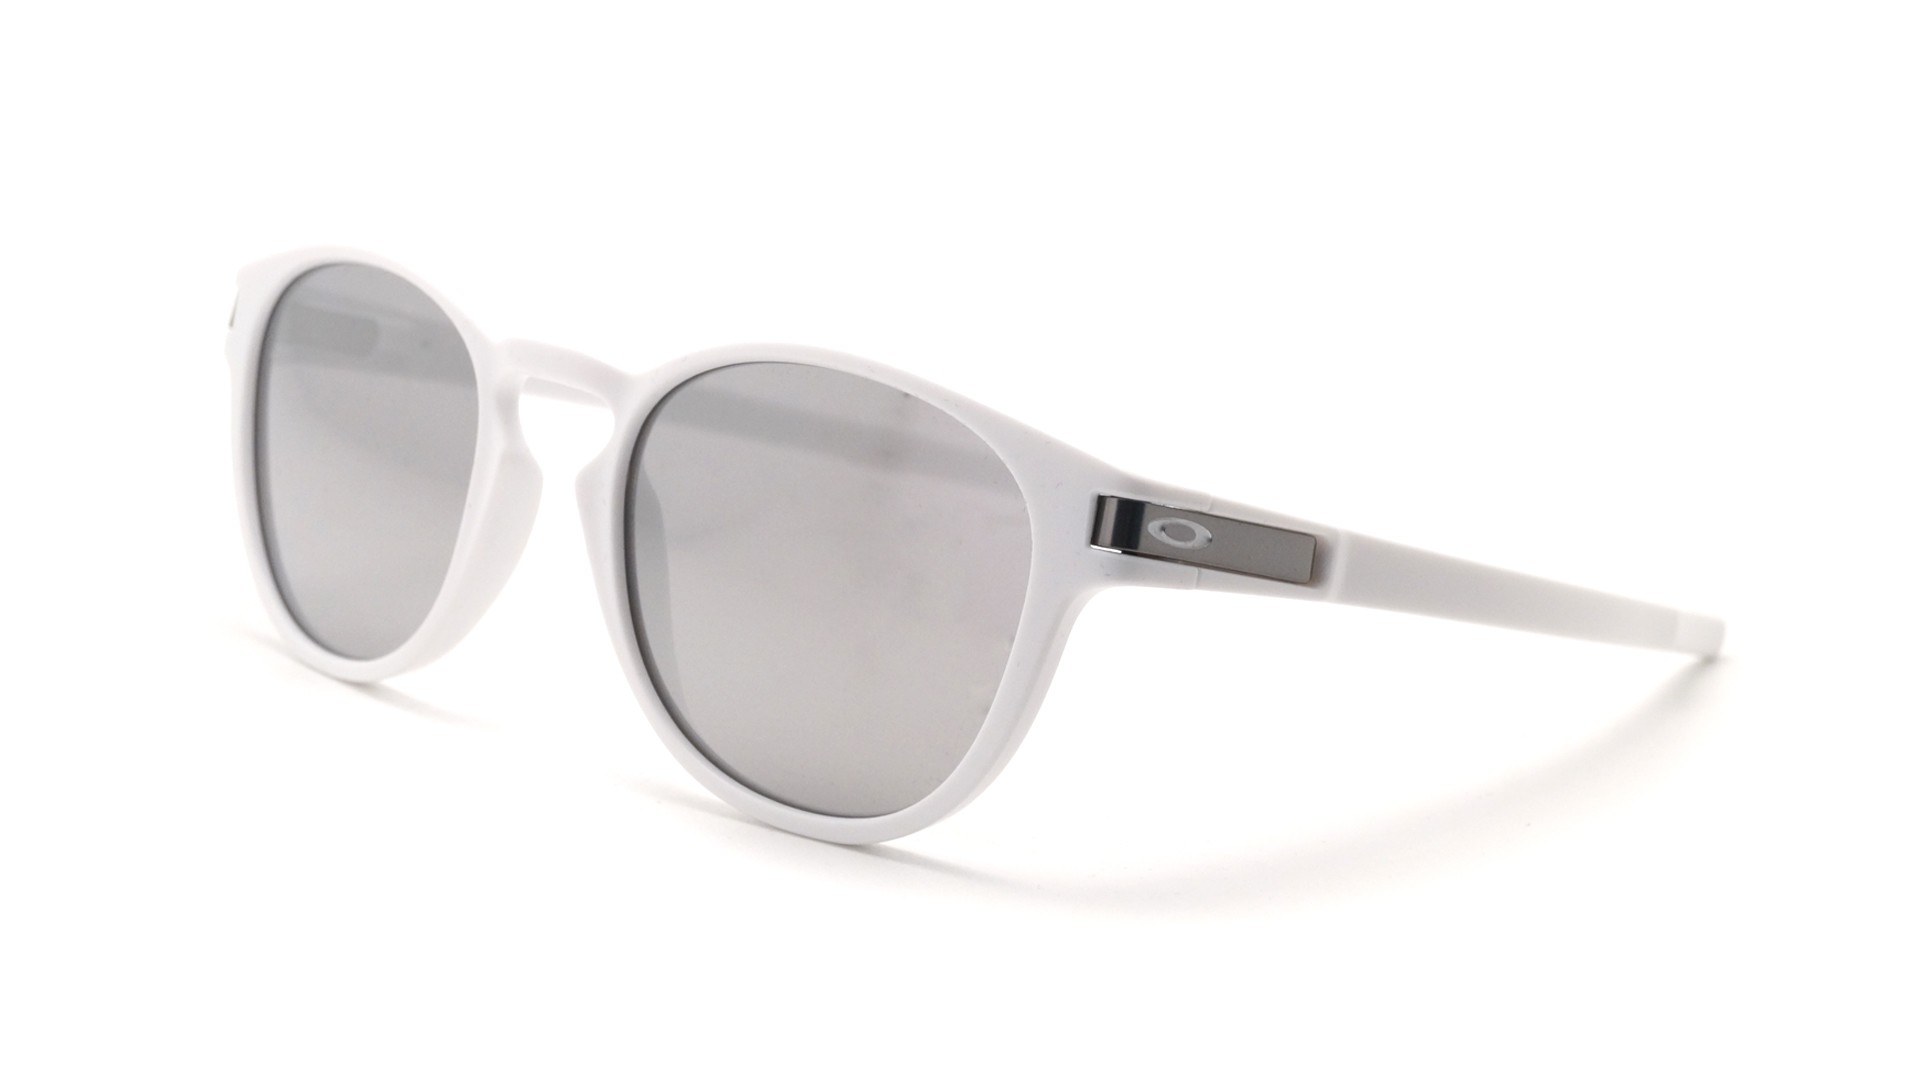 36ad1ffdee Oakley Aviator Frames « One More Soul